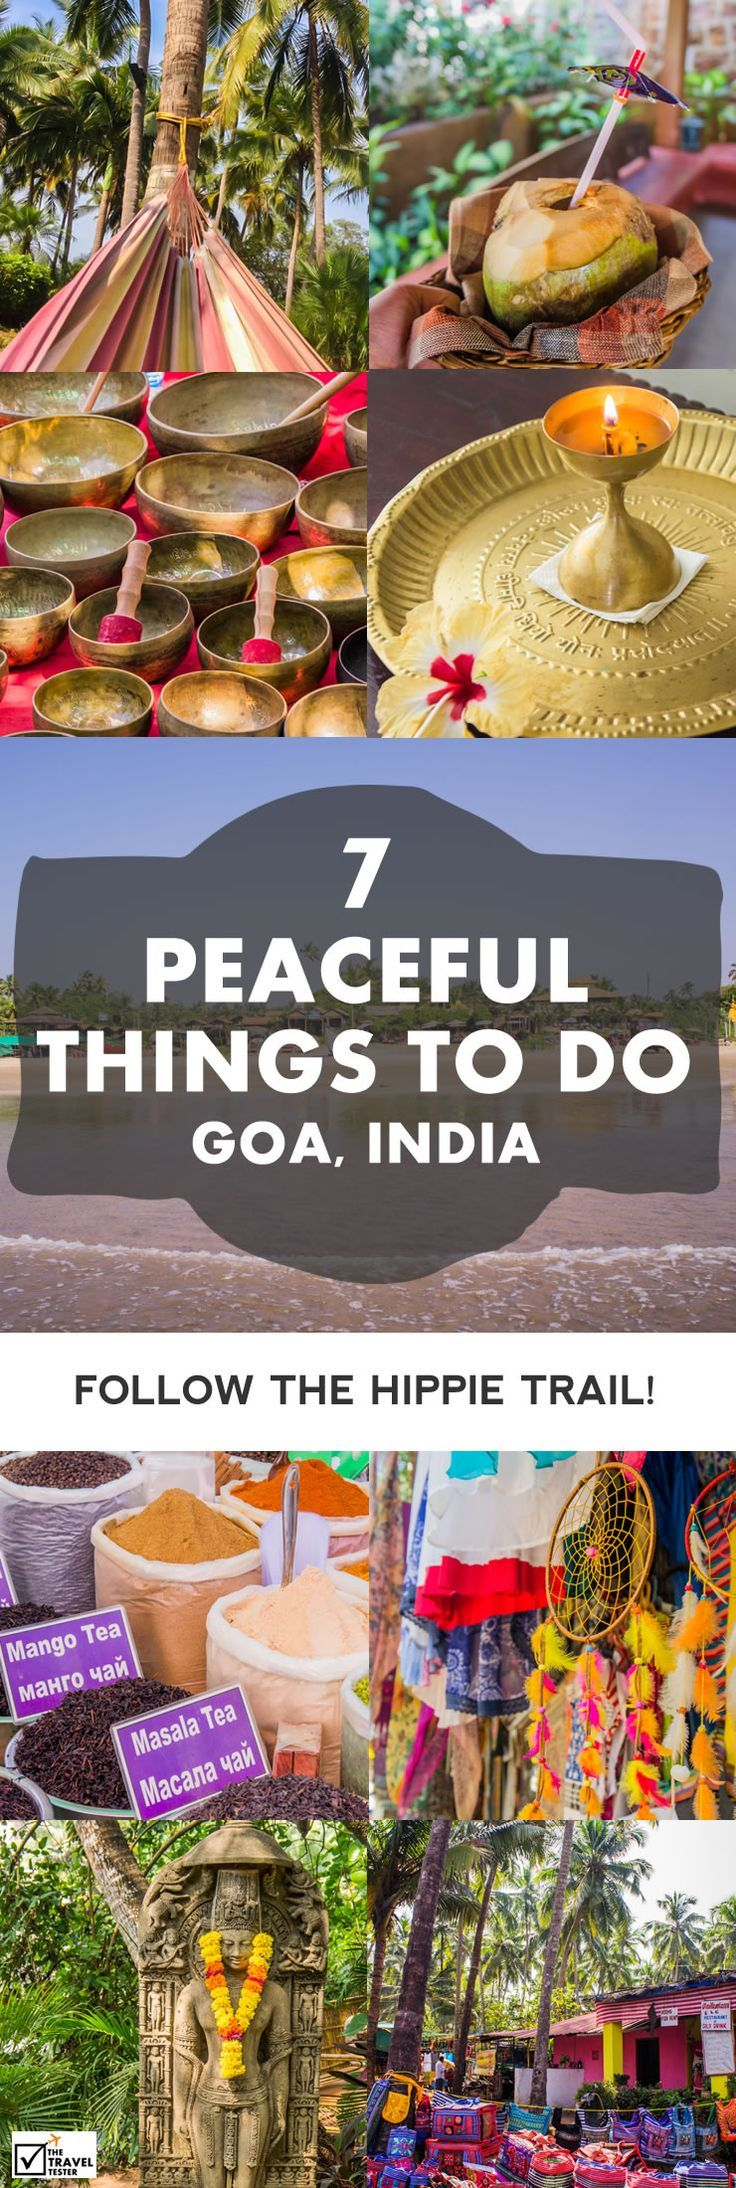 Are you wondering what places to see in Goa, India? Here are some suggestions on things to see and do to find that true Hippie vibe || The Travel Tester - Self-Development through Travel